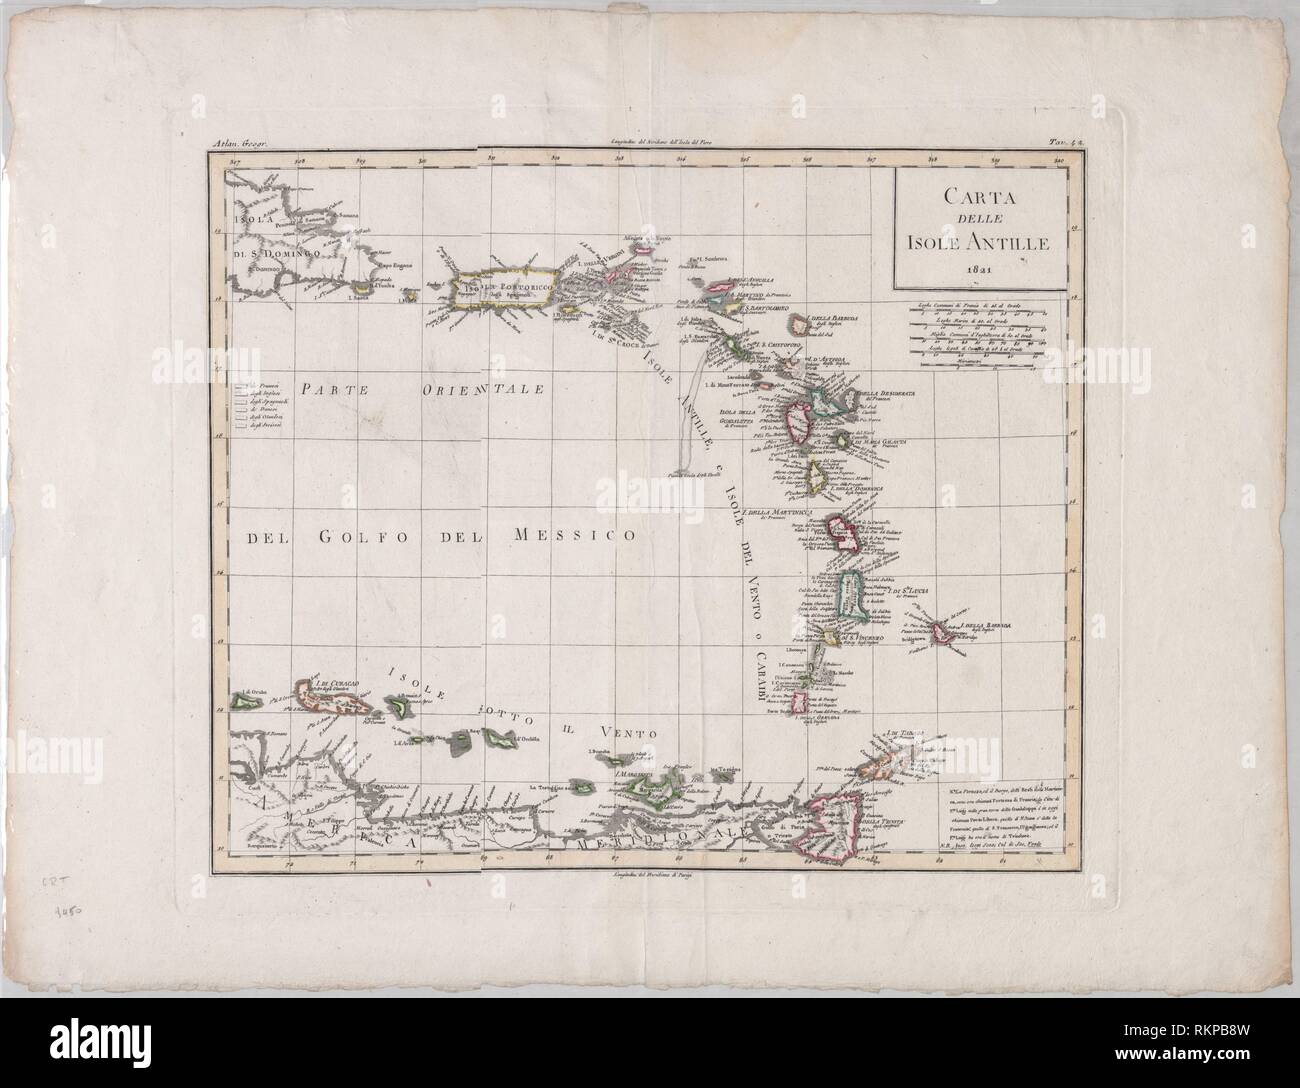 Carta delle Isole Antille. Date Issued: 1821. West Indies - Maps Antilles, Greater - Maps Antilles, Lesser - Maps. Maps. 1 map Hand col., Extent: 39 Stock Photo